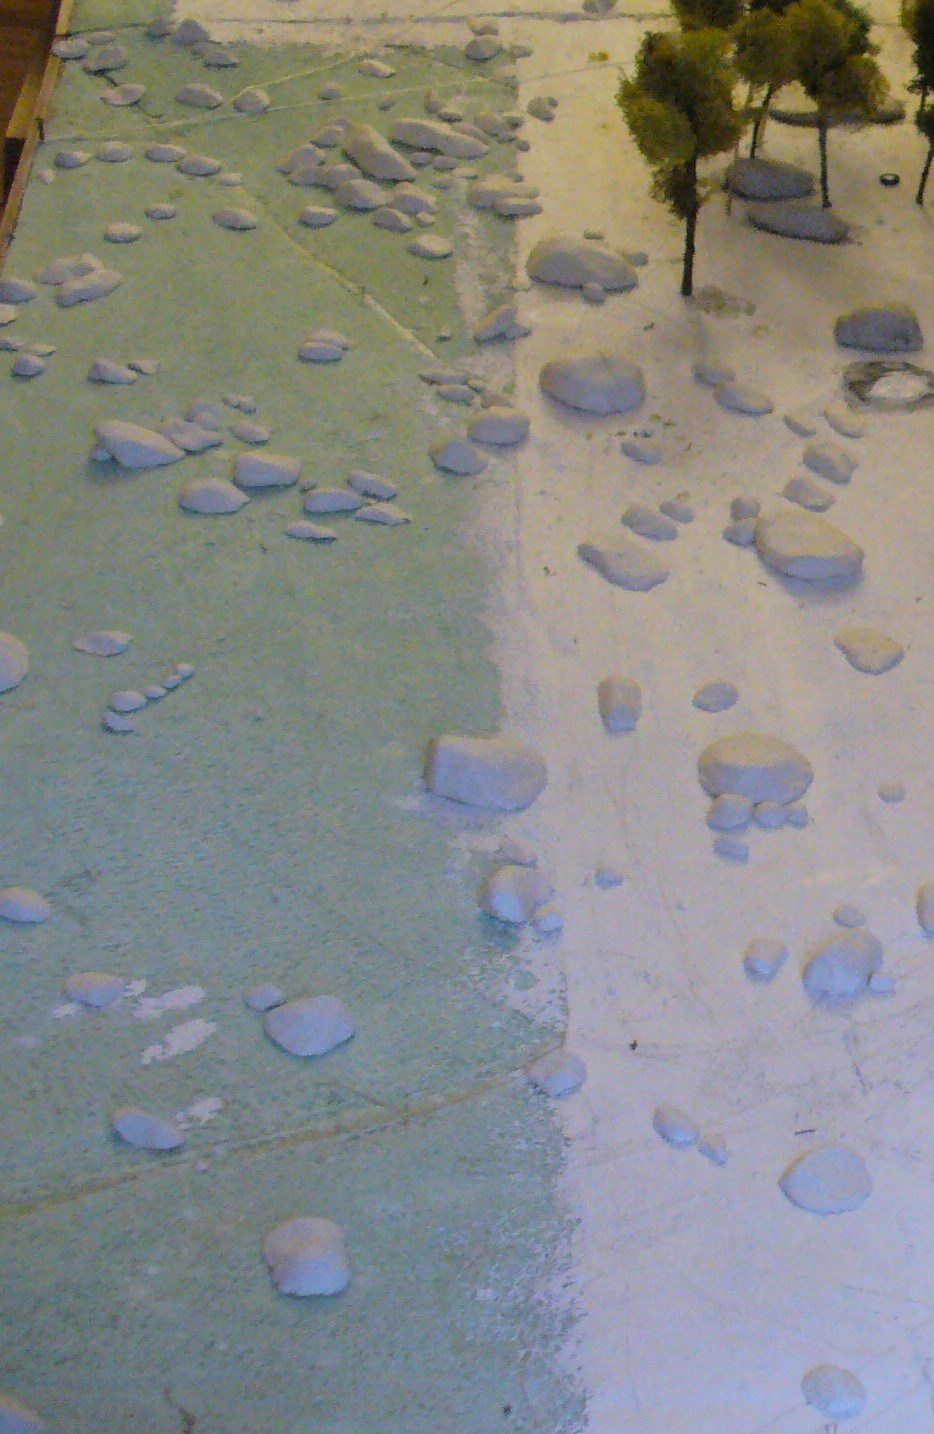 P1210983 cropped to just plaster cloth